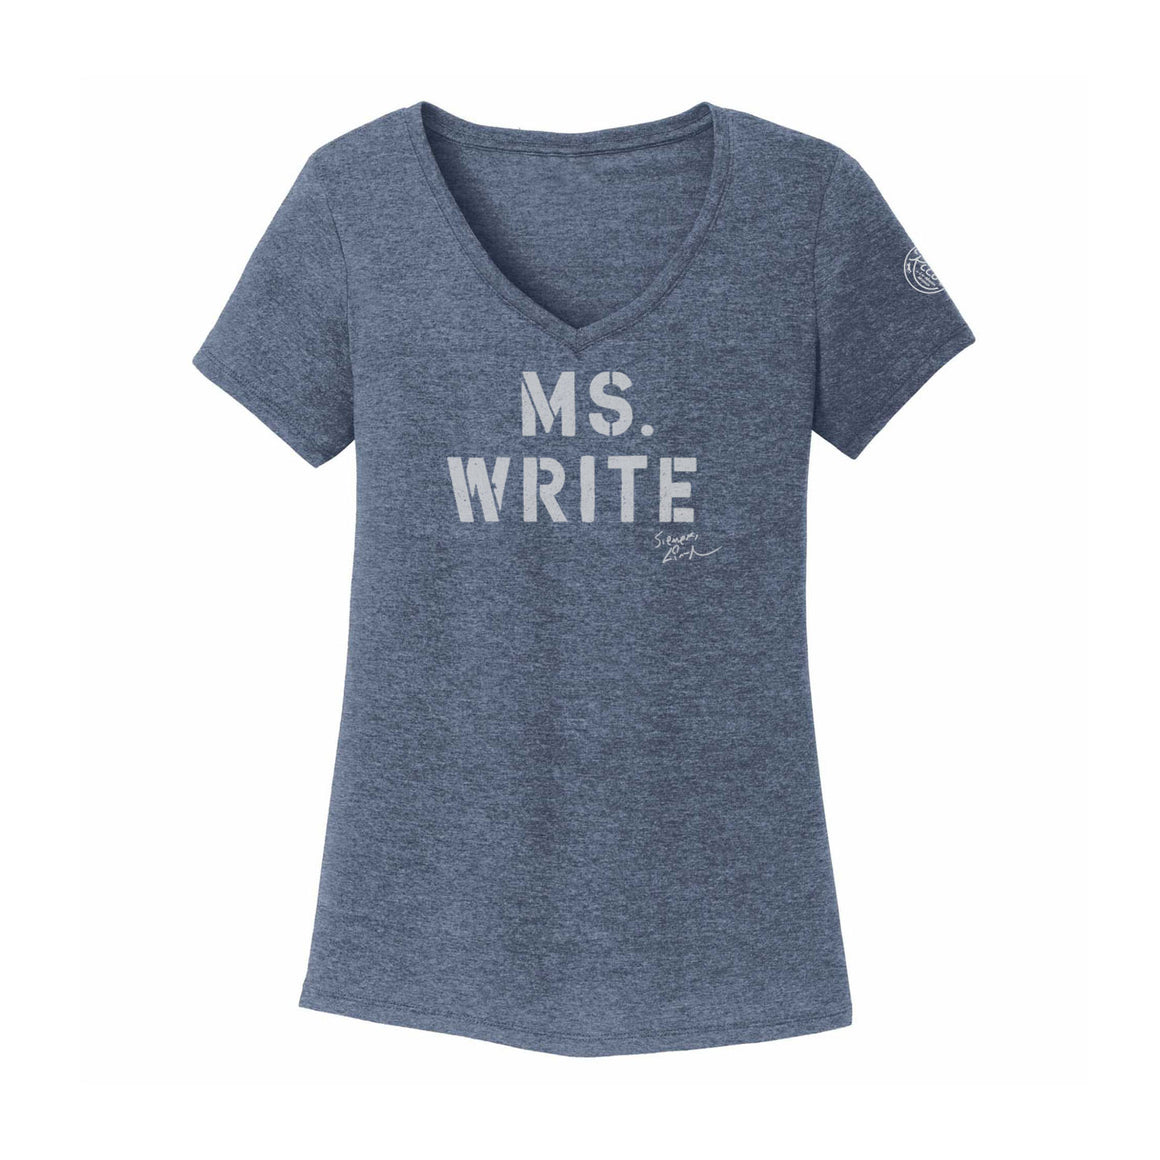 MS. WRITE - Ladies V-Neck